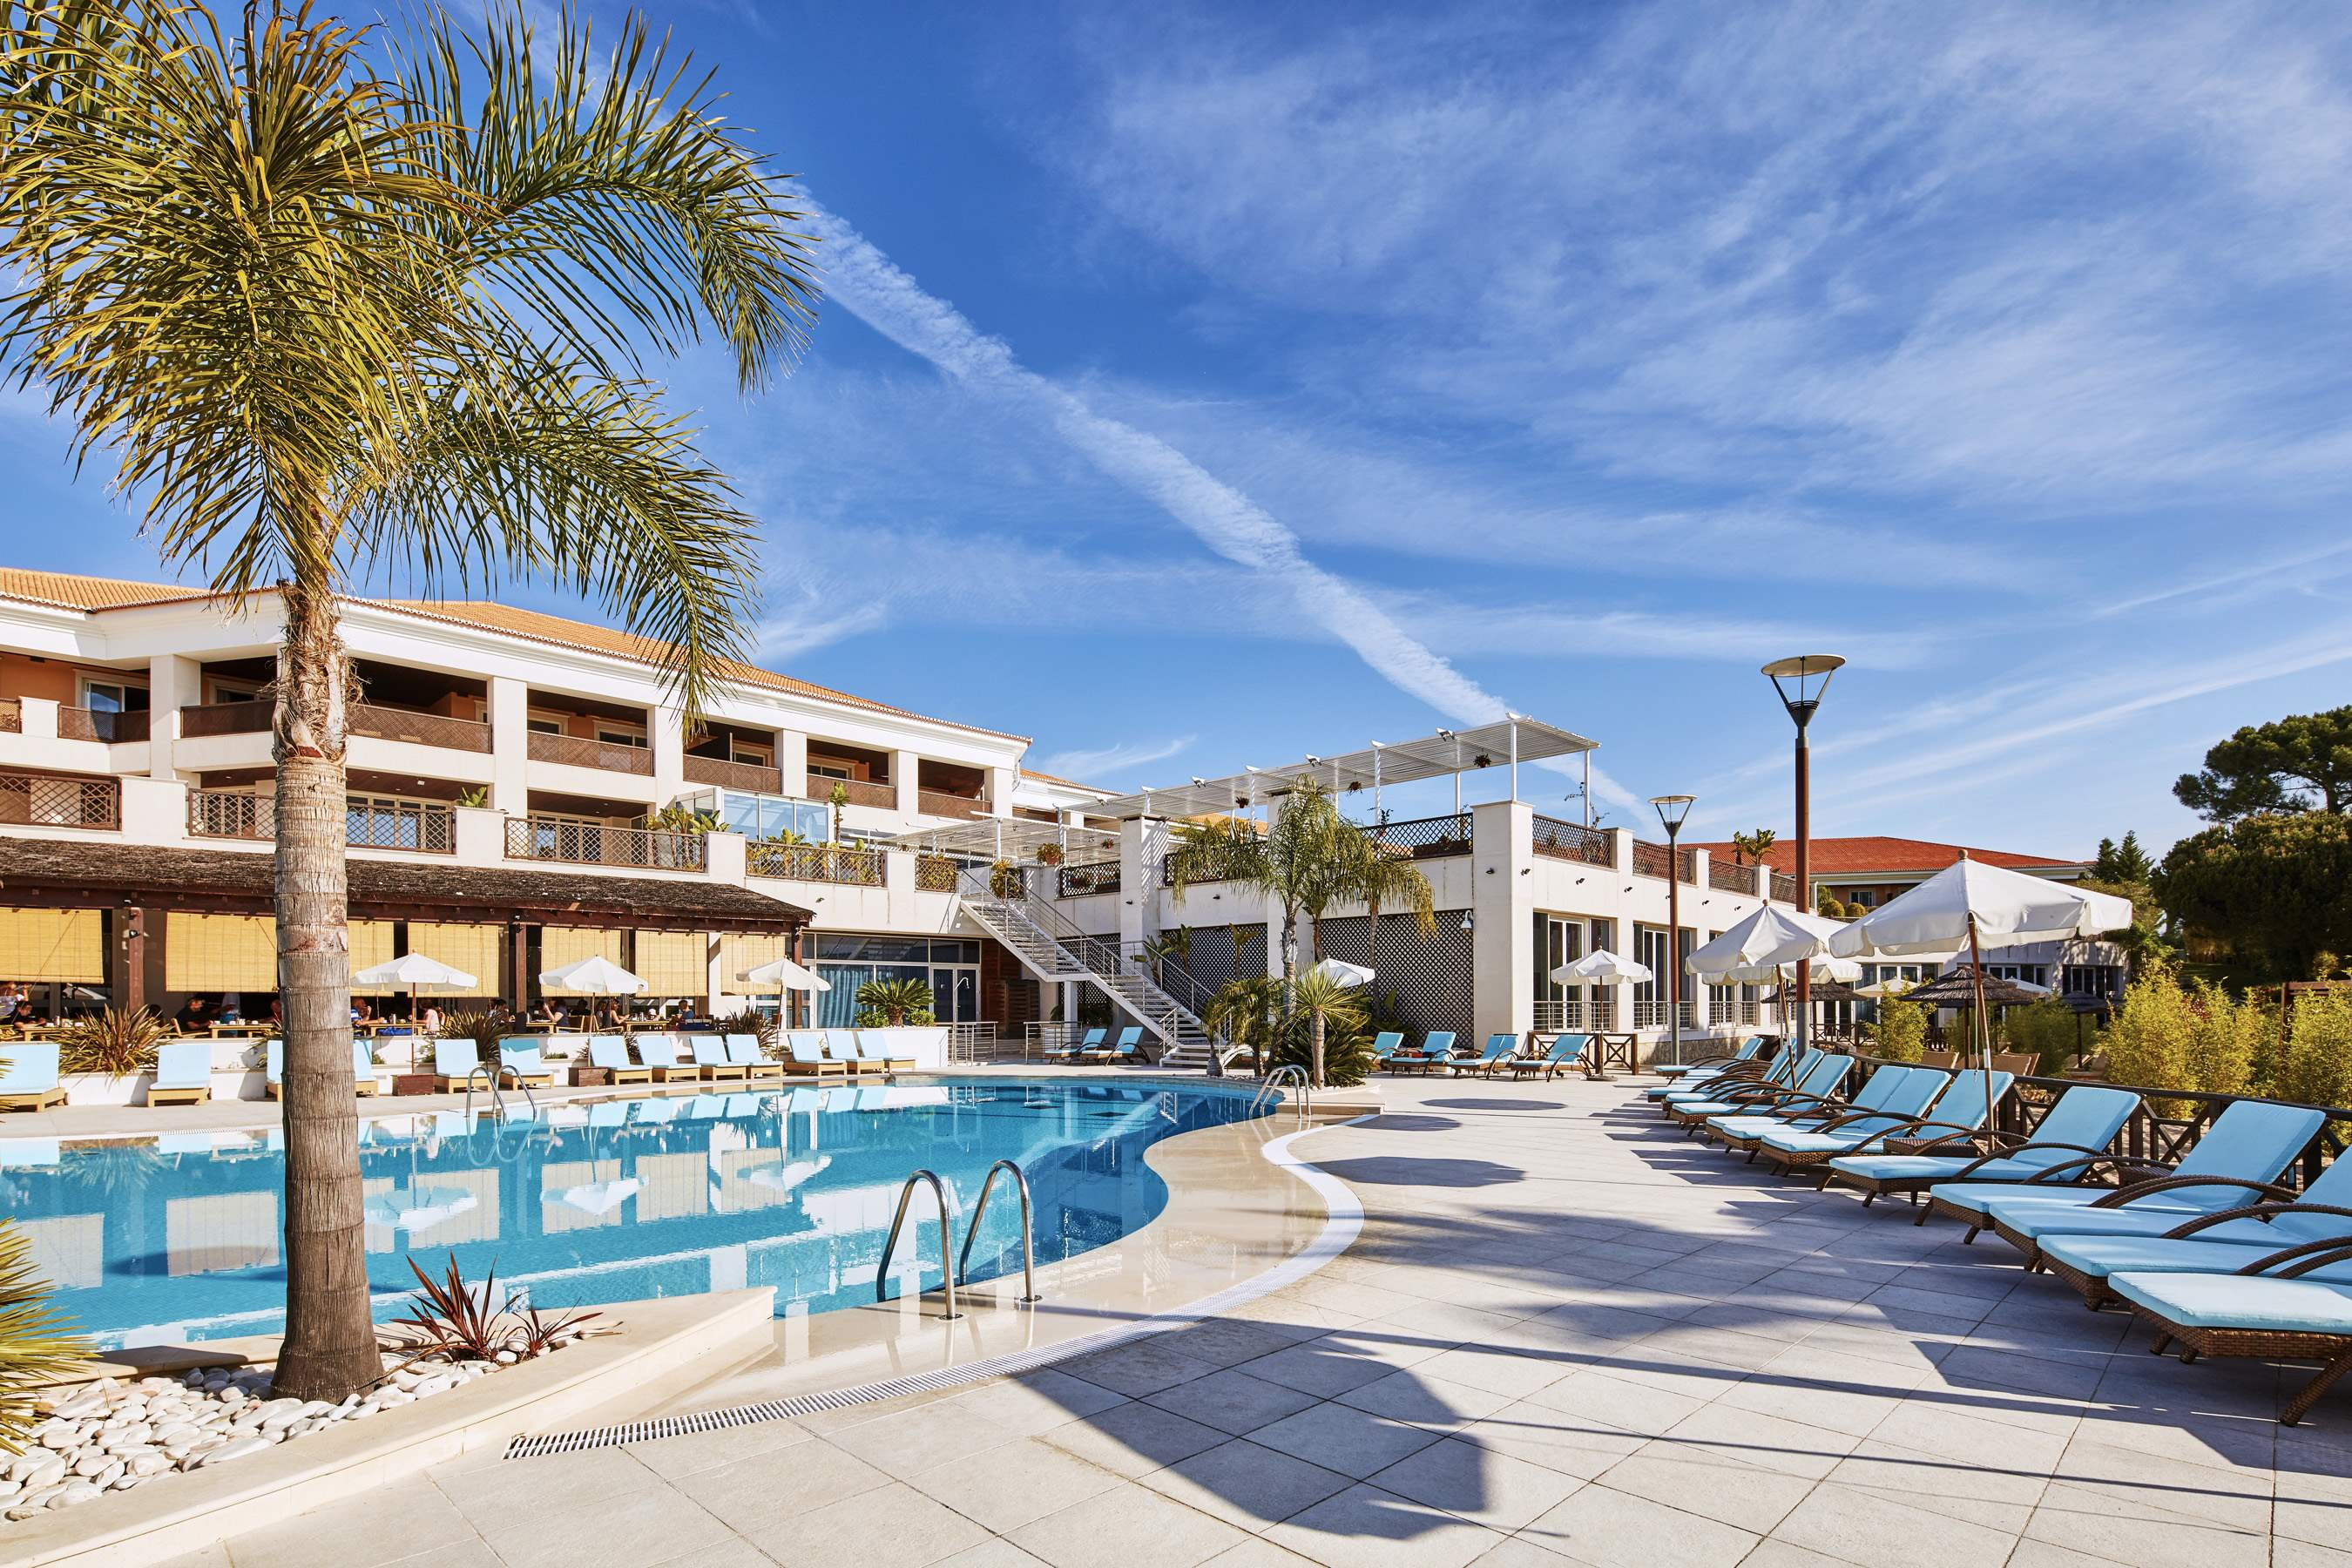 Wyndham Grand Algarve 2 Bedroom, Deluxe Family Suite, Pool Side, Room Only, 2 bedroom apartment in Wyndham Grand Algarve, Algarve Photo #1